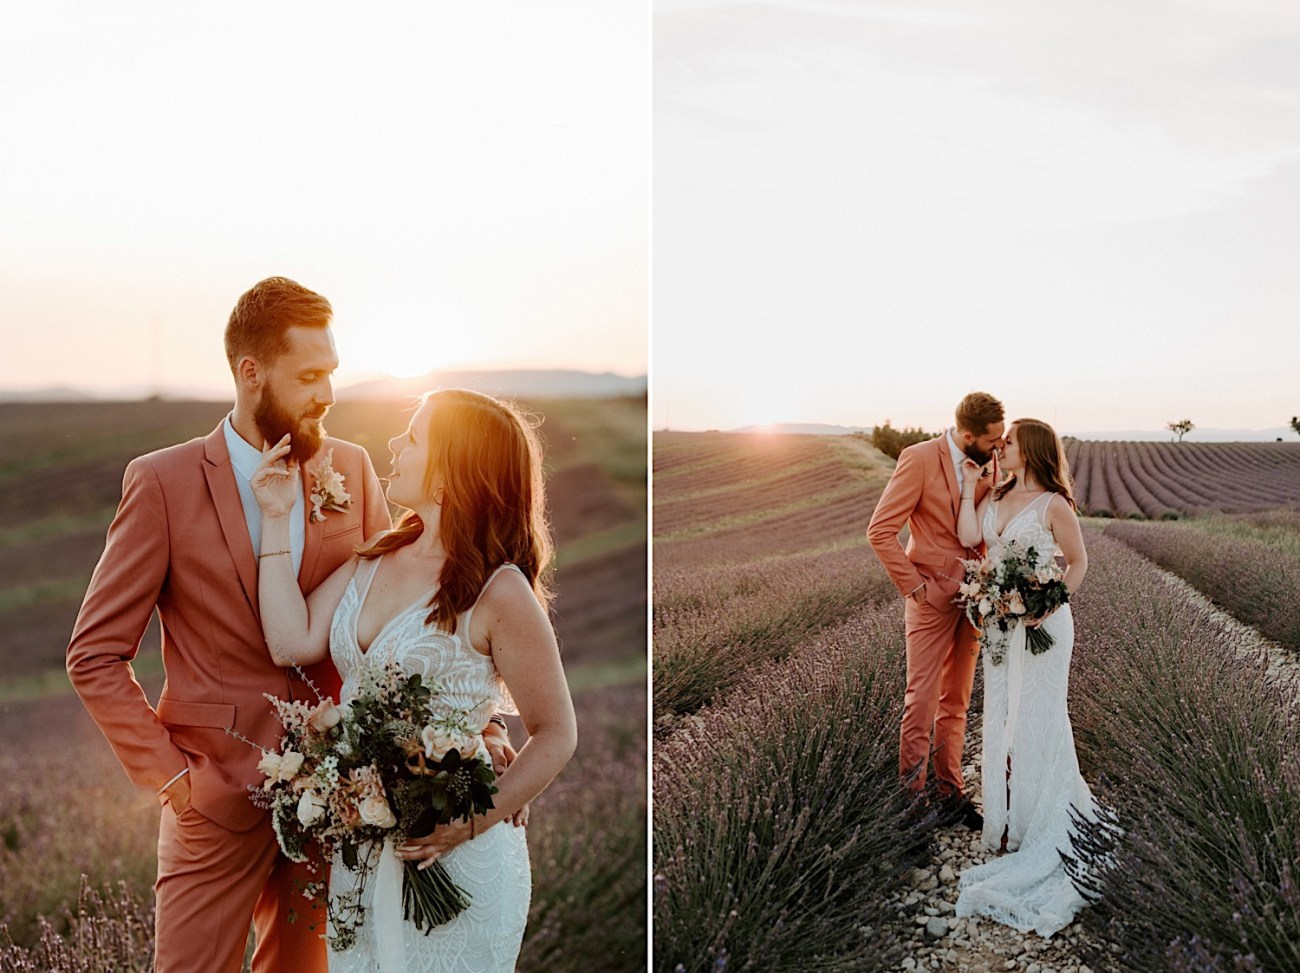 Valensole Wedding Photos Lavender Field Wedding Provence Wedding French Wedding Photographer Destination Wedding France Anais Possamai Photography 02